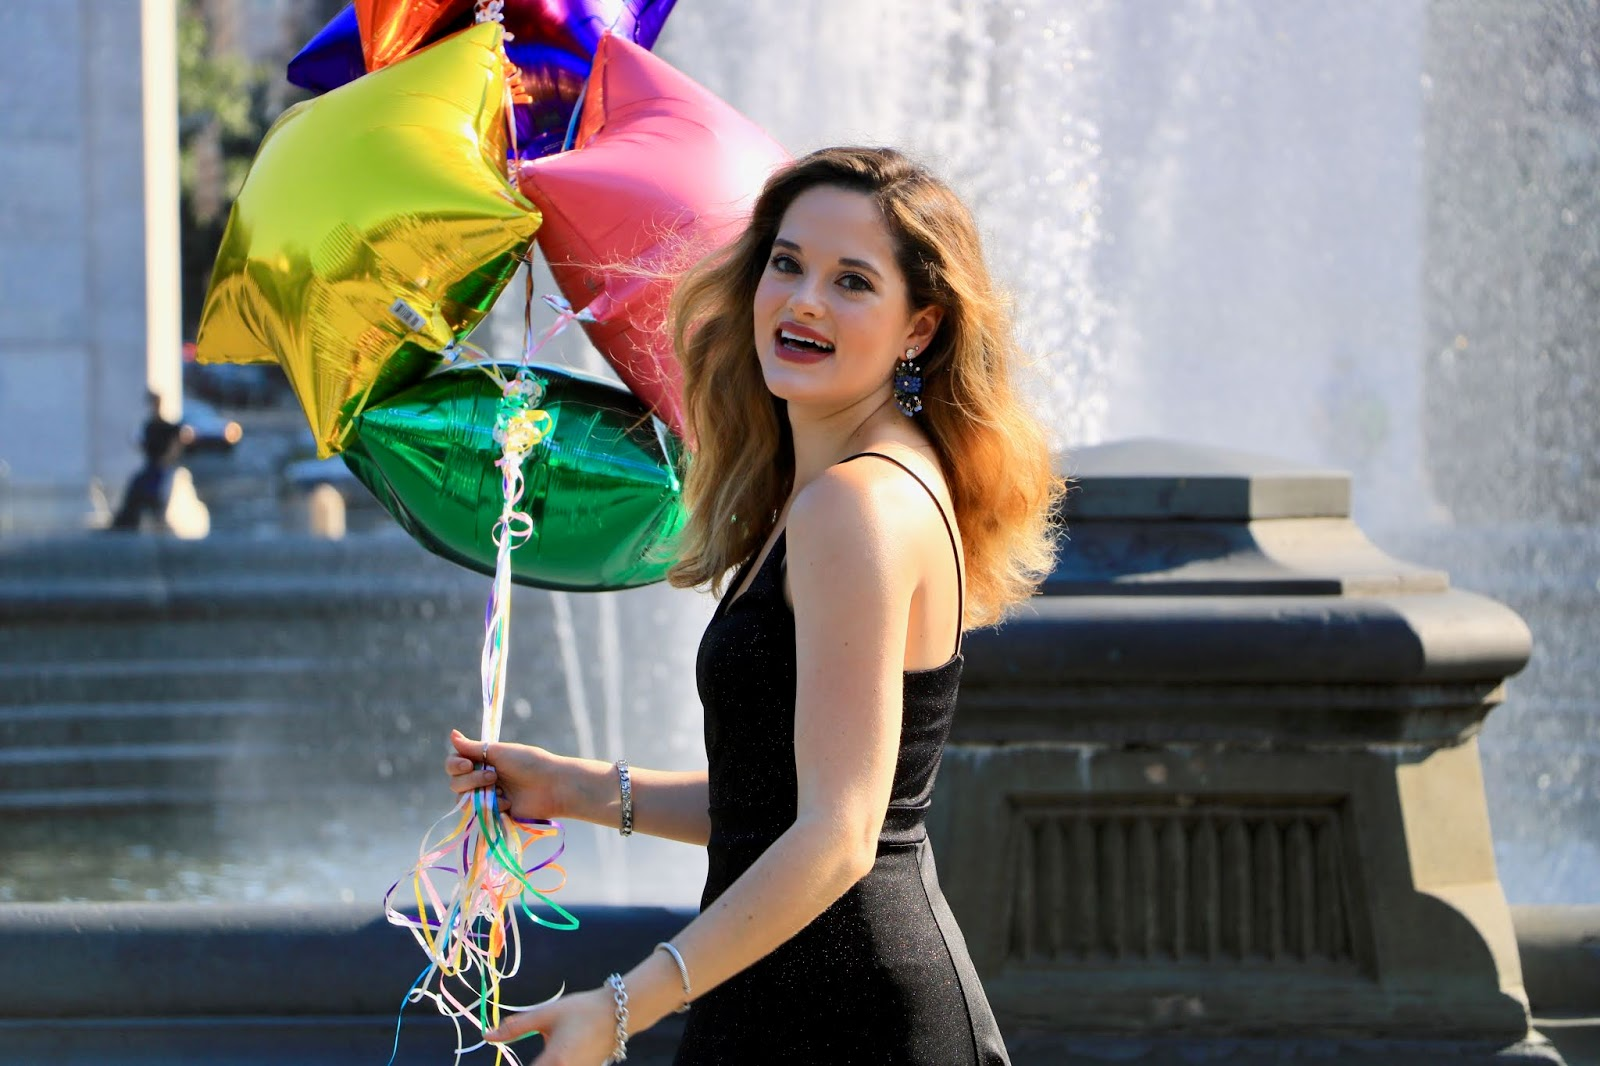 Nyc fashion blogger Kathleen Harper sharing how to take cute photos with balloons.